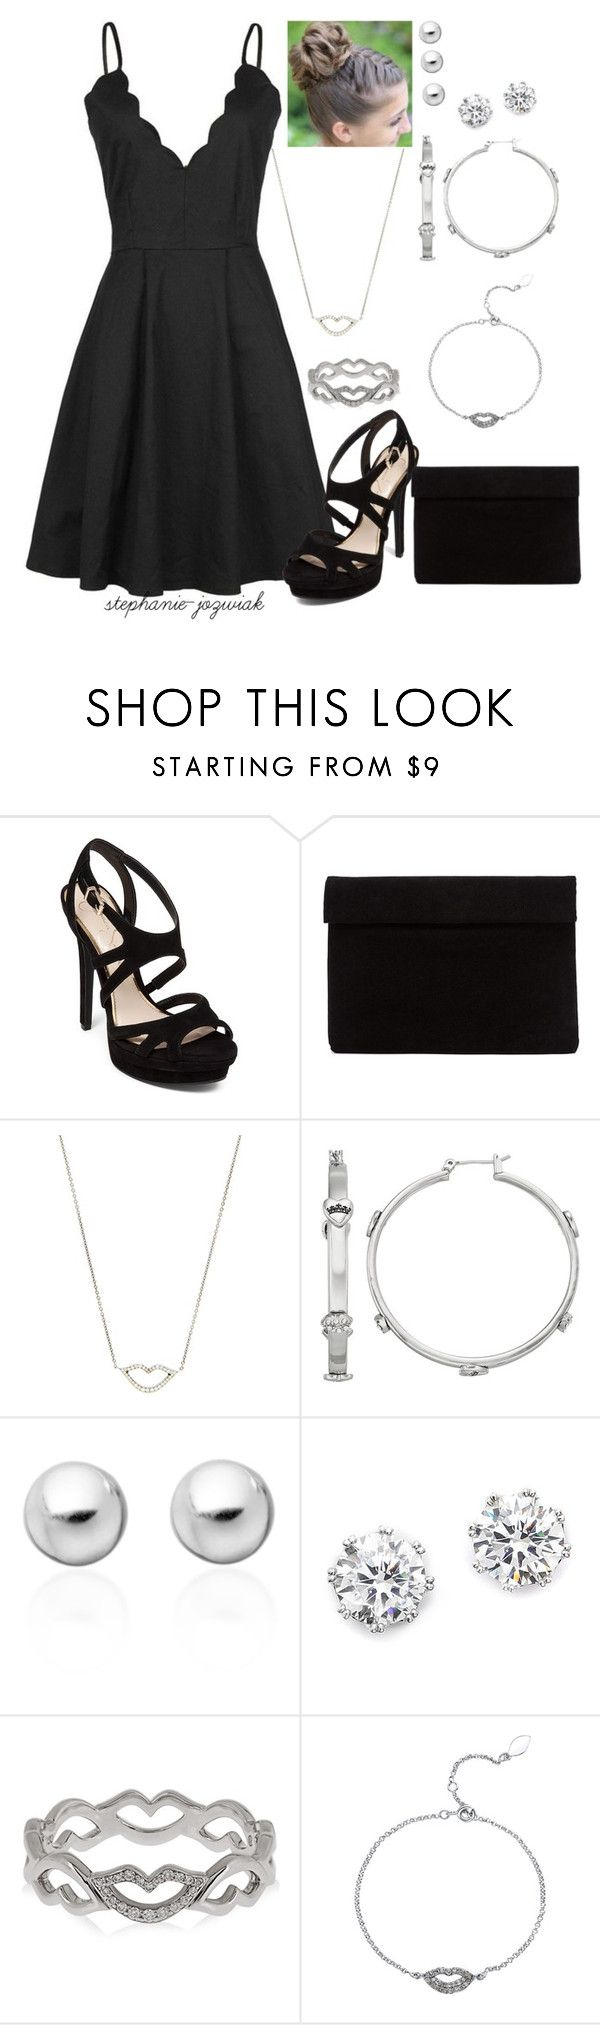 """Farren's Outfit for Brad's Funeral"" by stephanie-jozwiak ❤ liked on Polyvore featuring Jessica Simpson, Raphaele Canot, Juicy Couture, Astley Clarke and Kenneth Jay Lane"